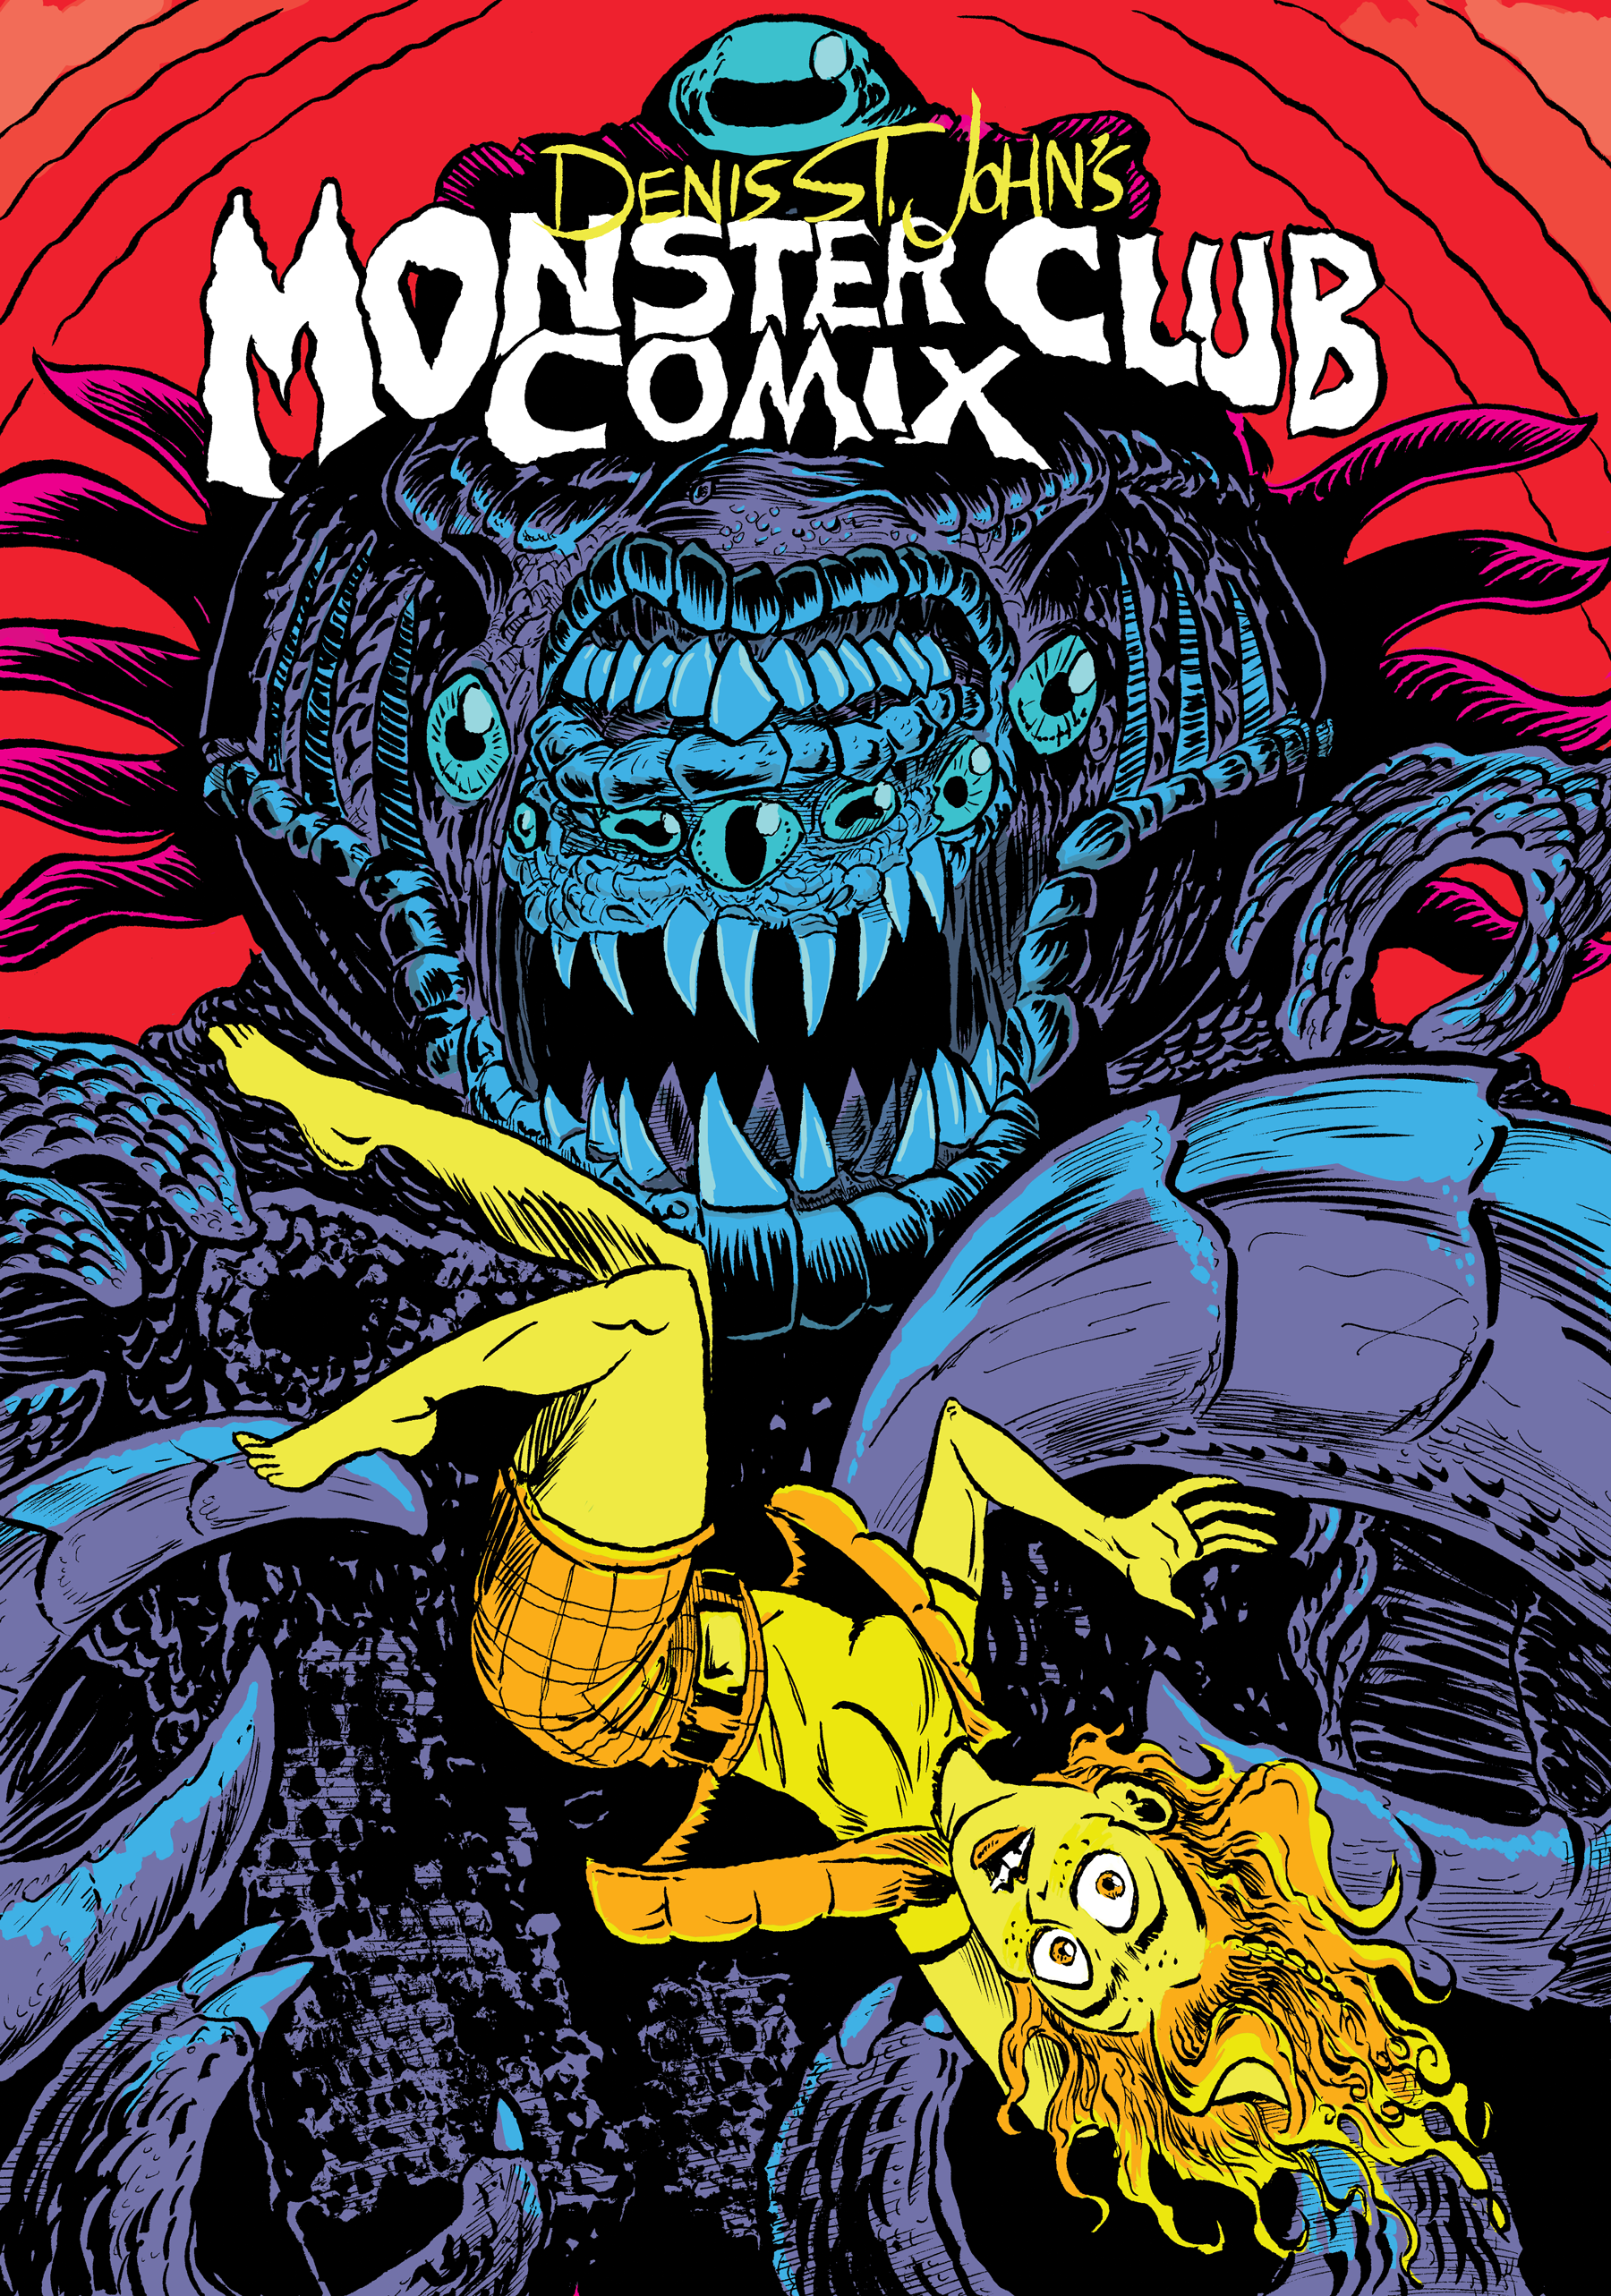 Denis St. John's Monster Club Comix! 20 pages of mysterious monster short stories! 10 dollars!